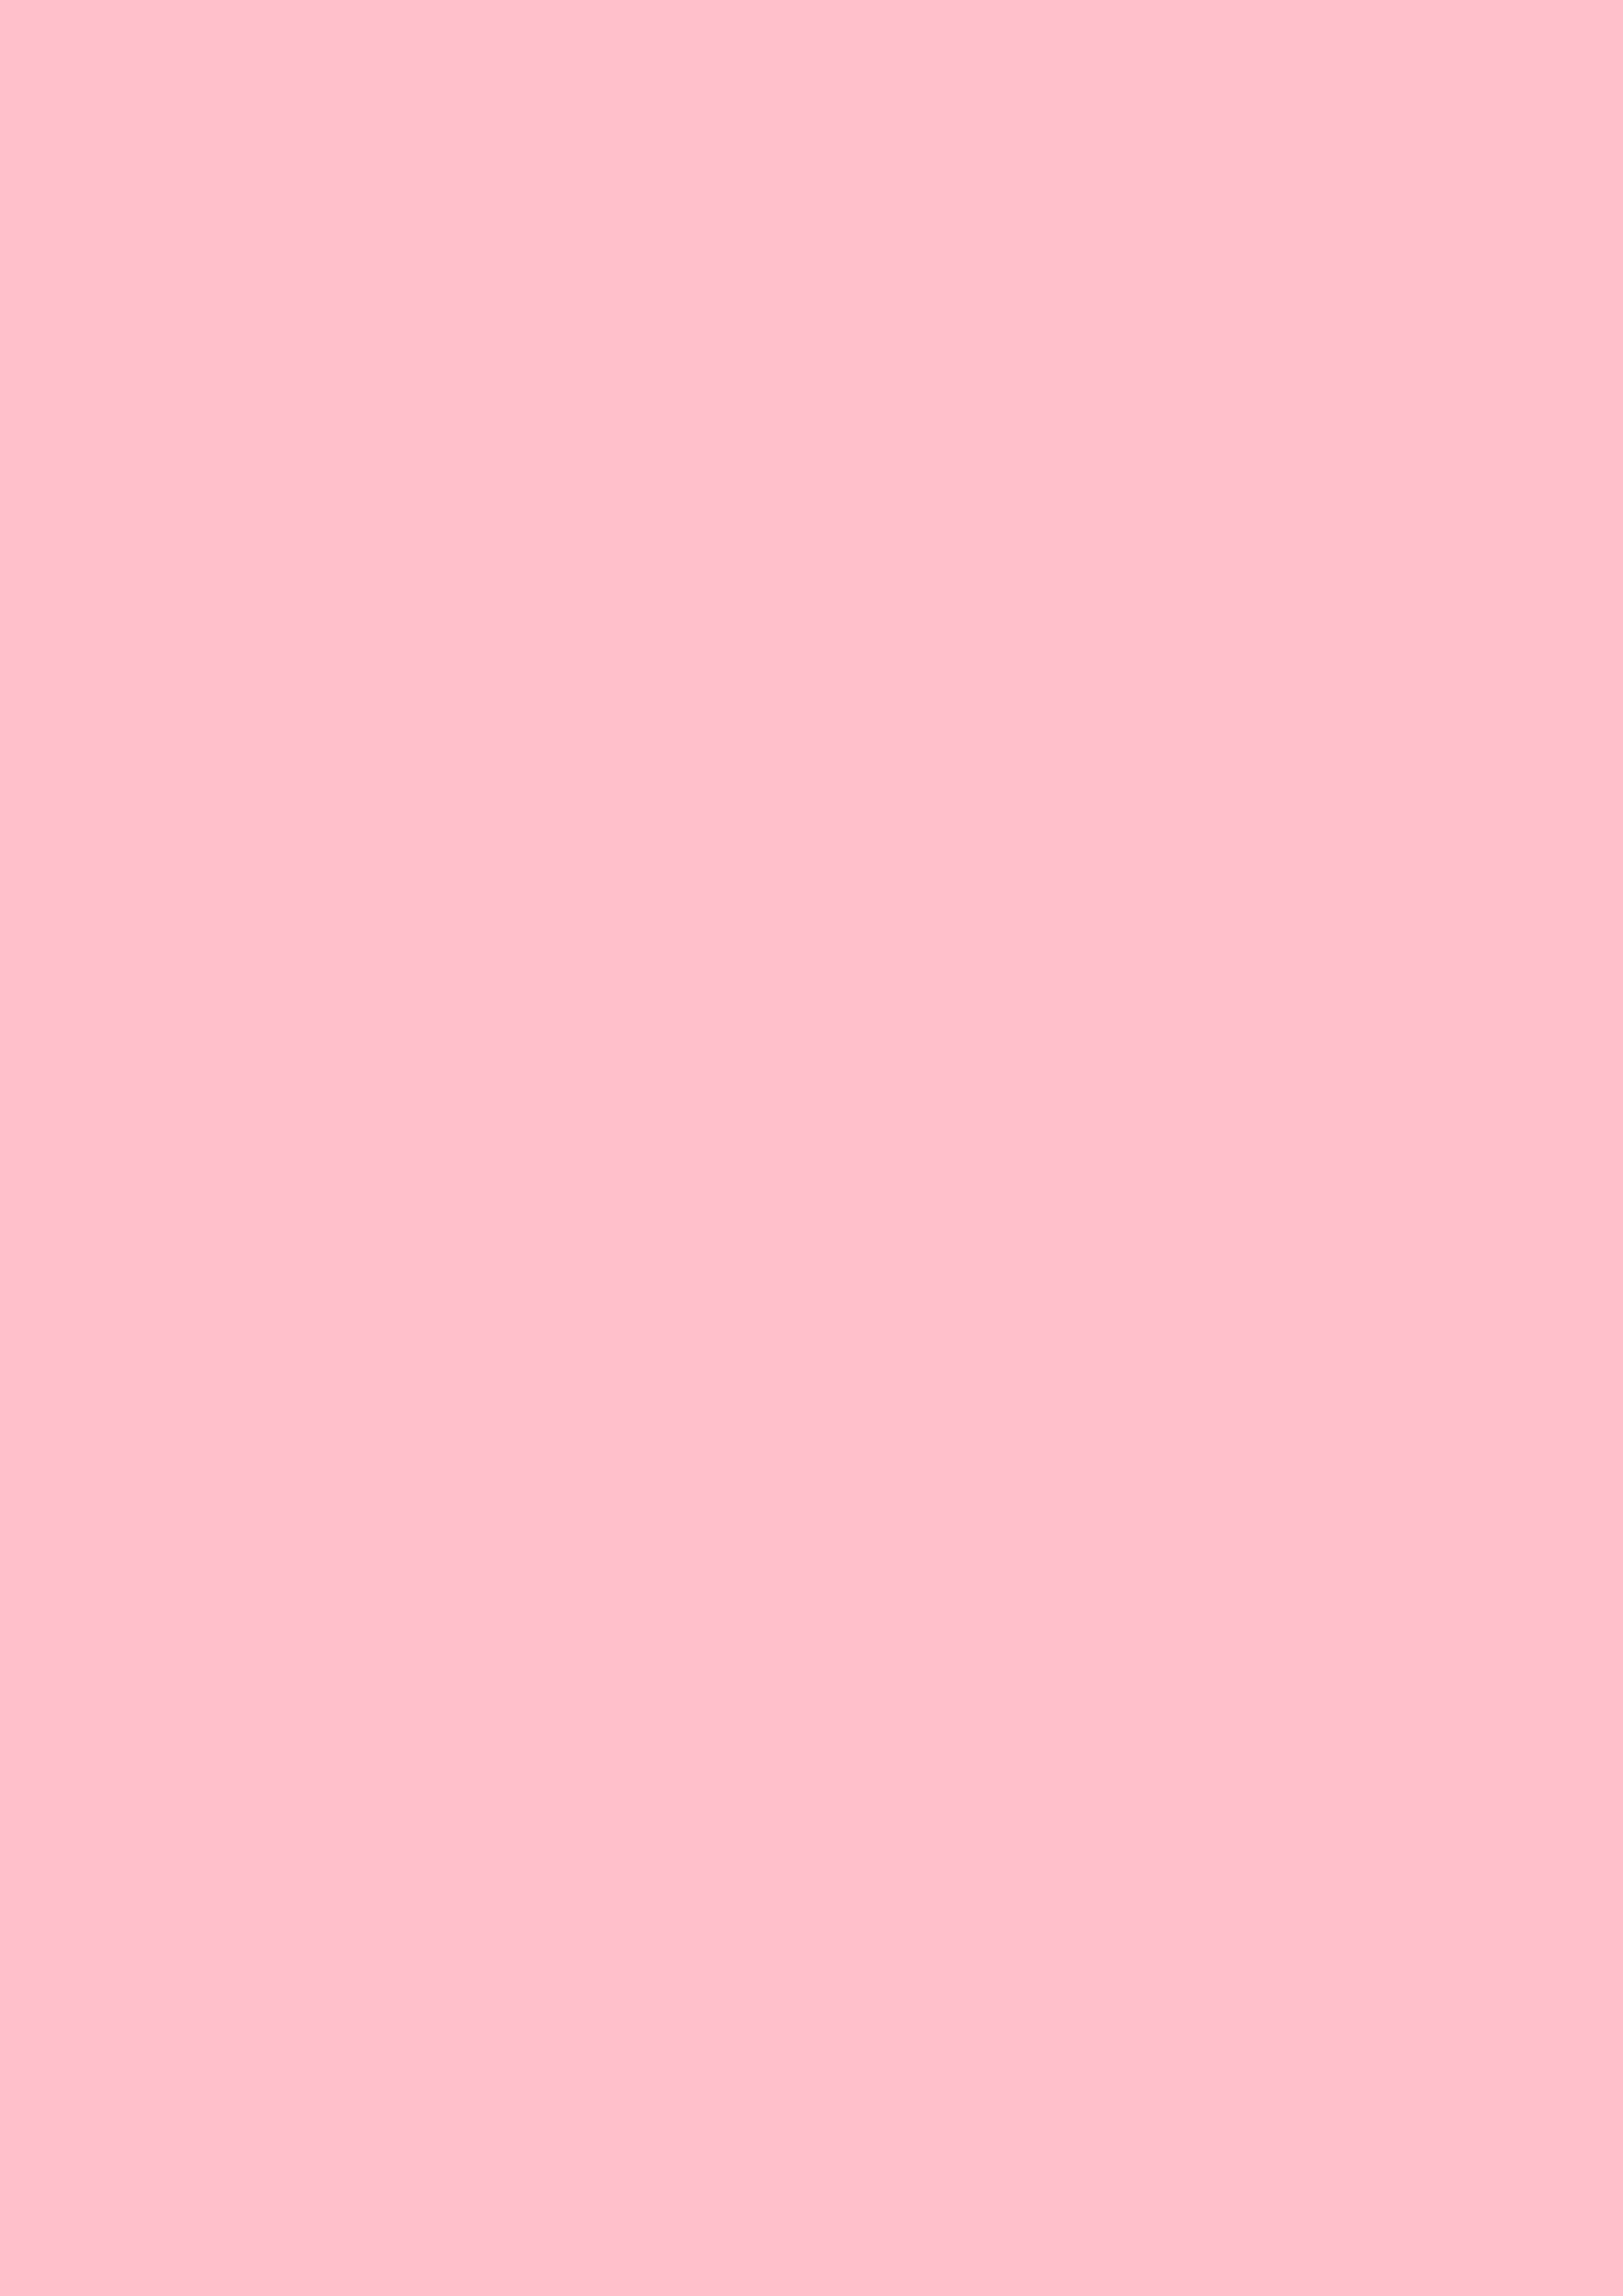 2480x3508 Pink Solid Color Background